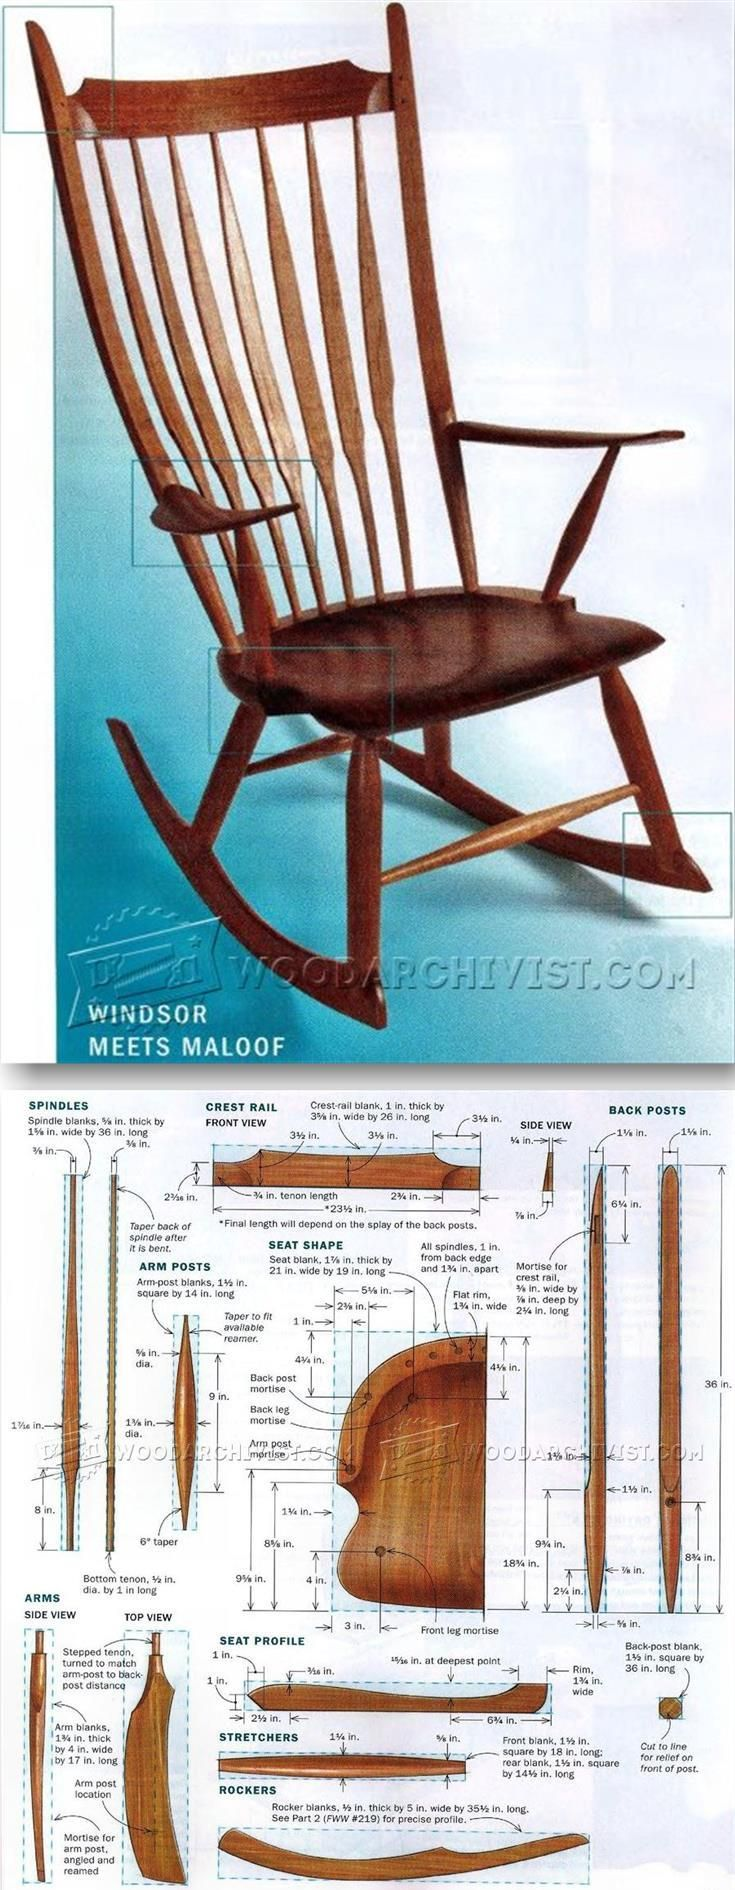 Windsor Rocking Chair Plans   Furniture Plans And Projects |  WoodArchivist.com